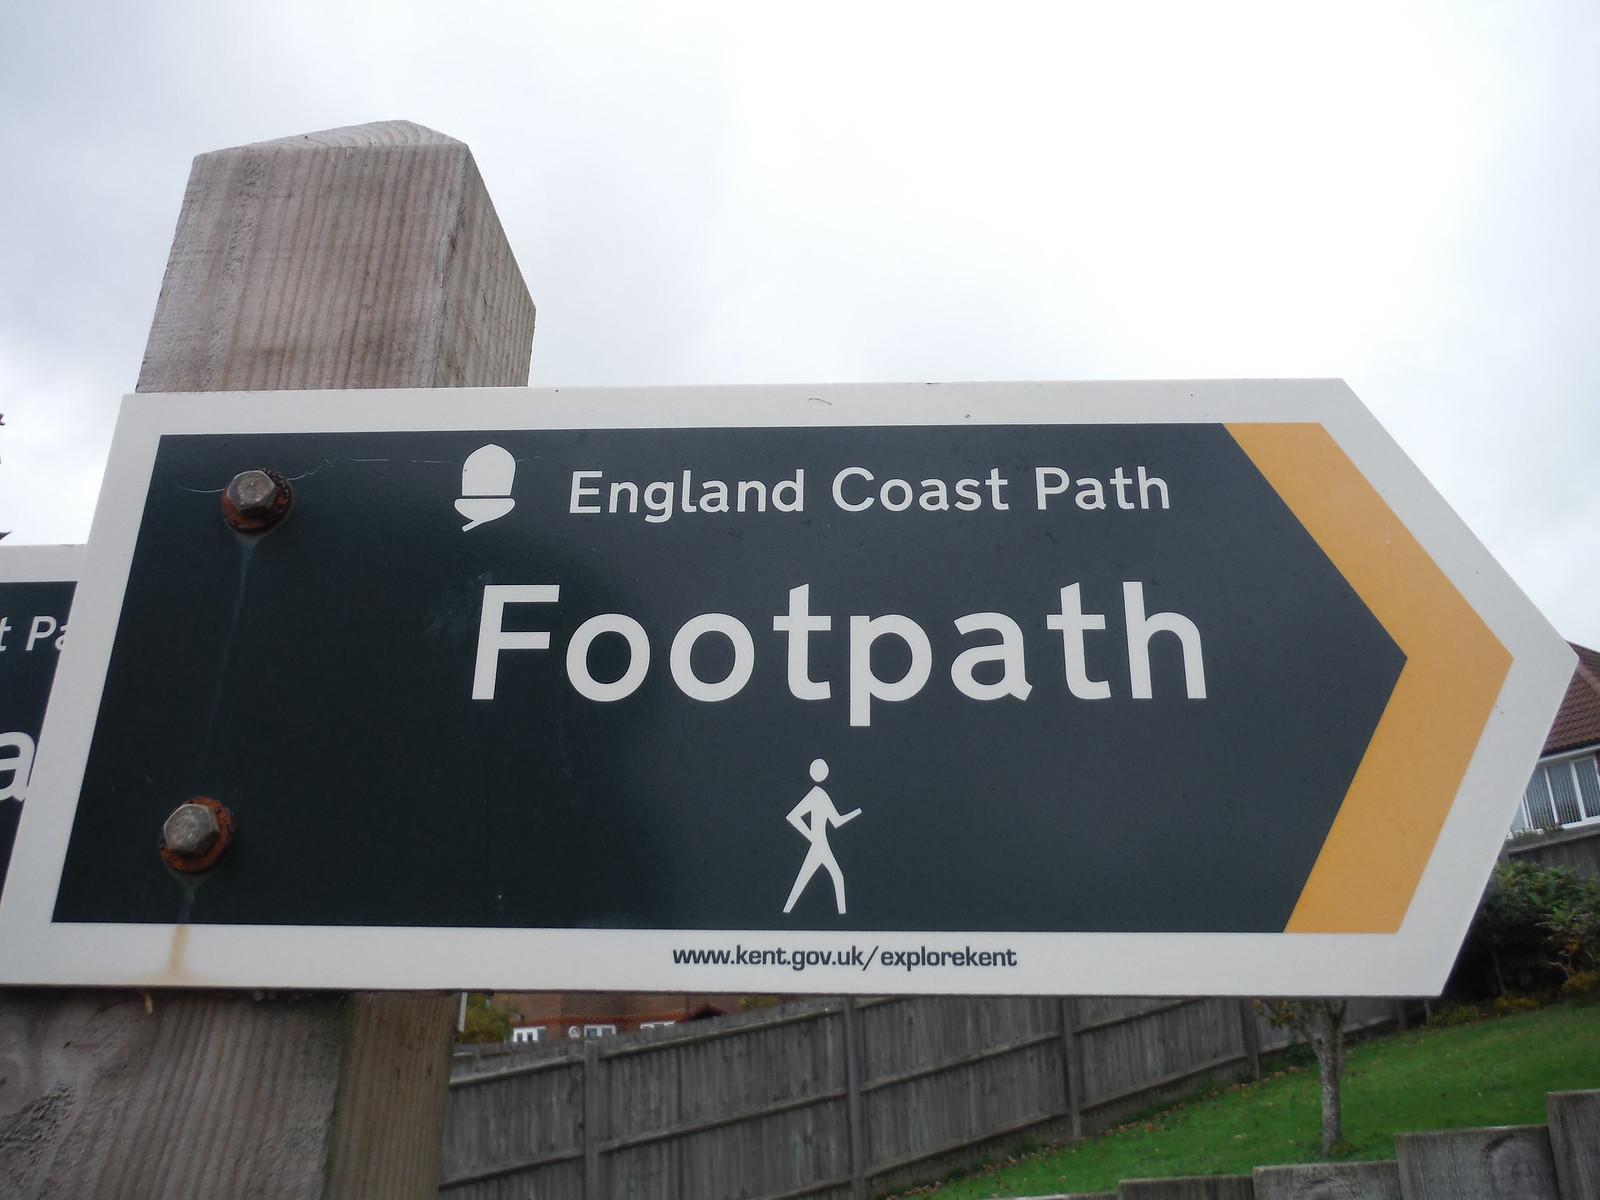 England Coast Path sign SWC Walk 93 - North Downs Way: Sandling to Folkestone or Dover